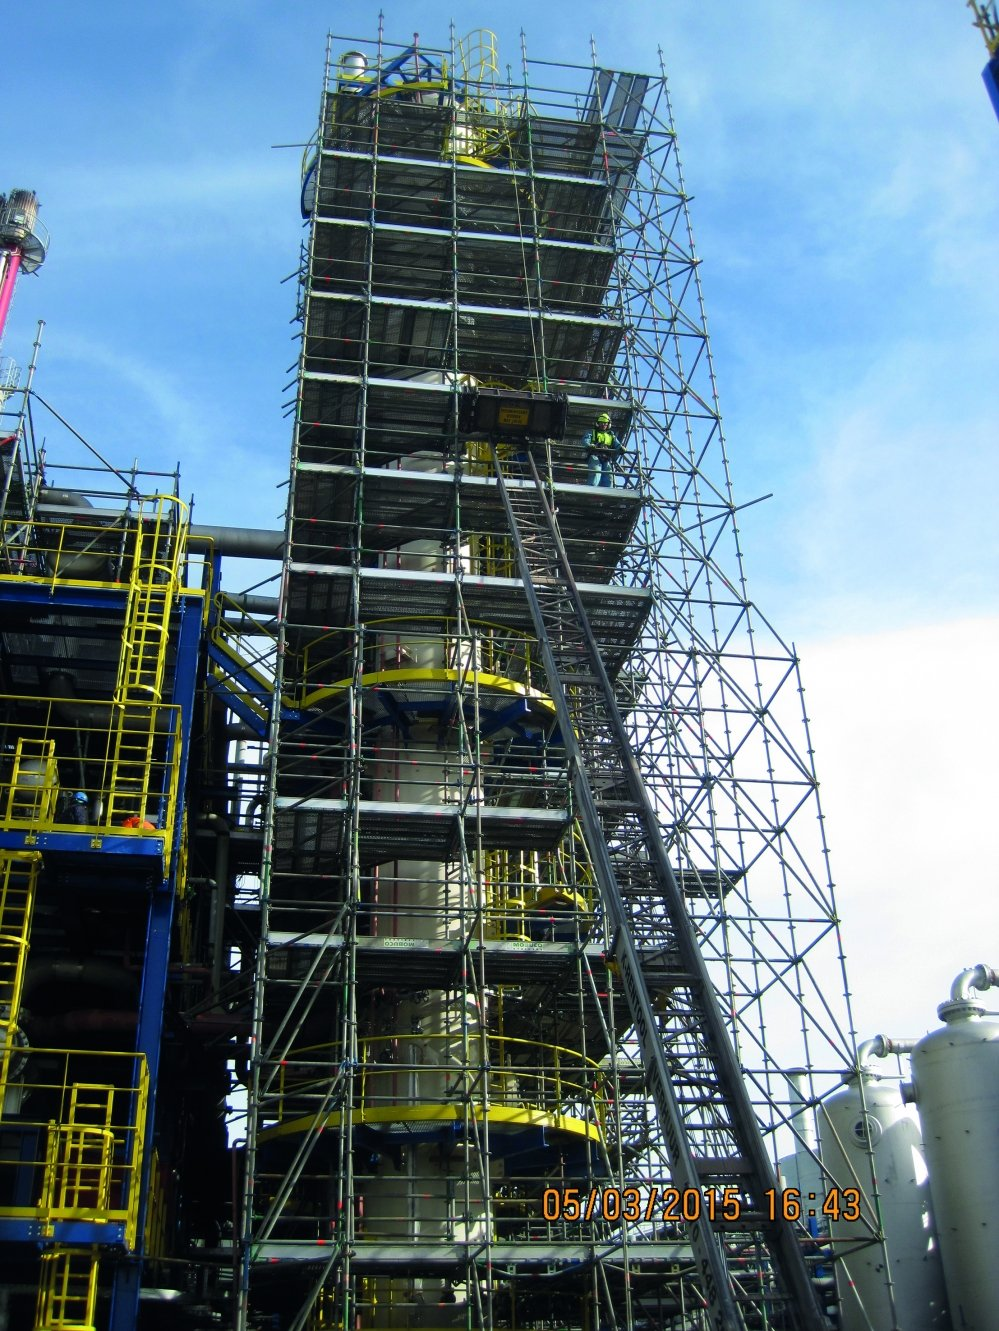 Scaffolding Training Europe STE 9